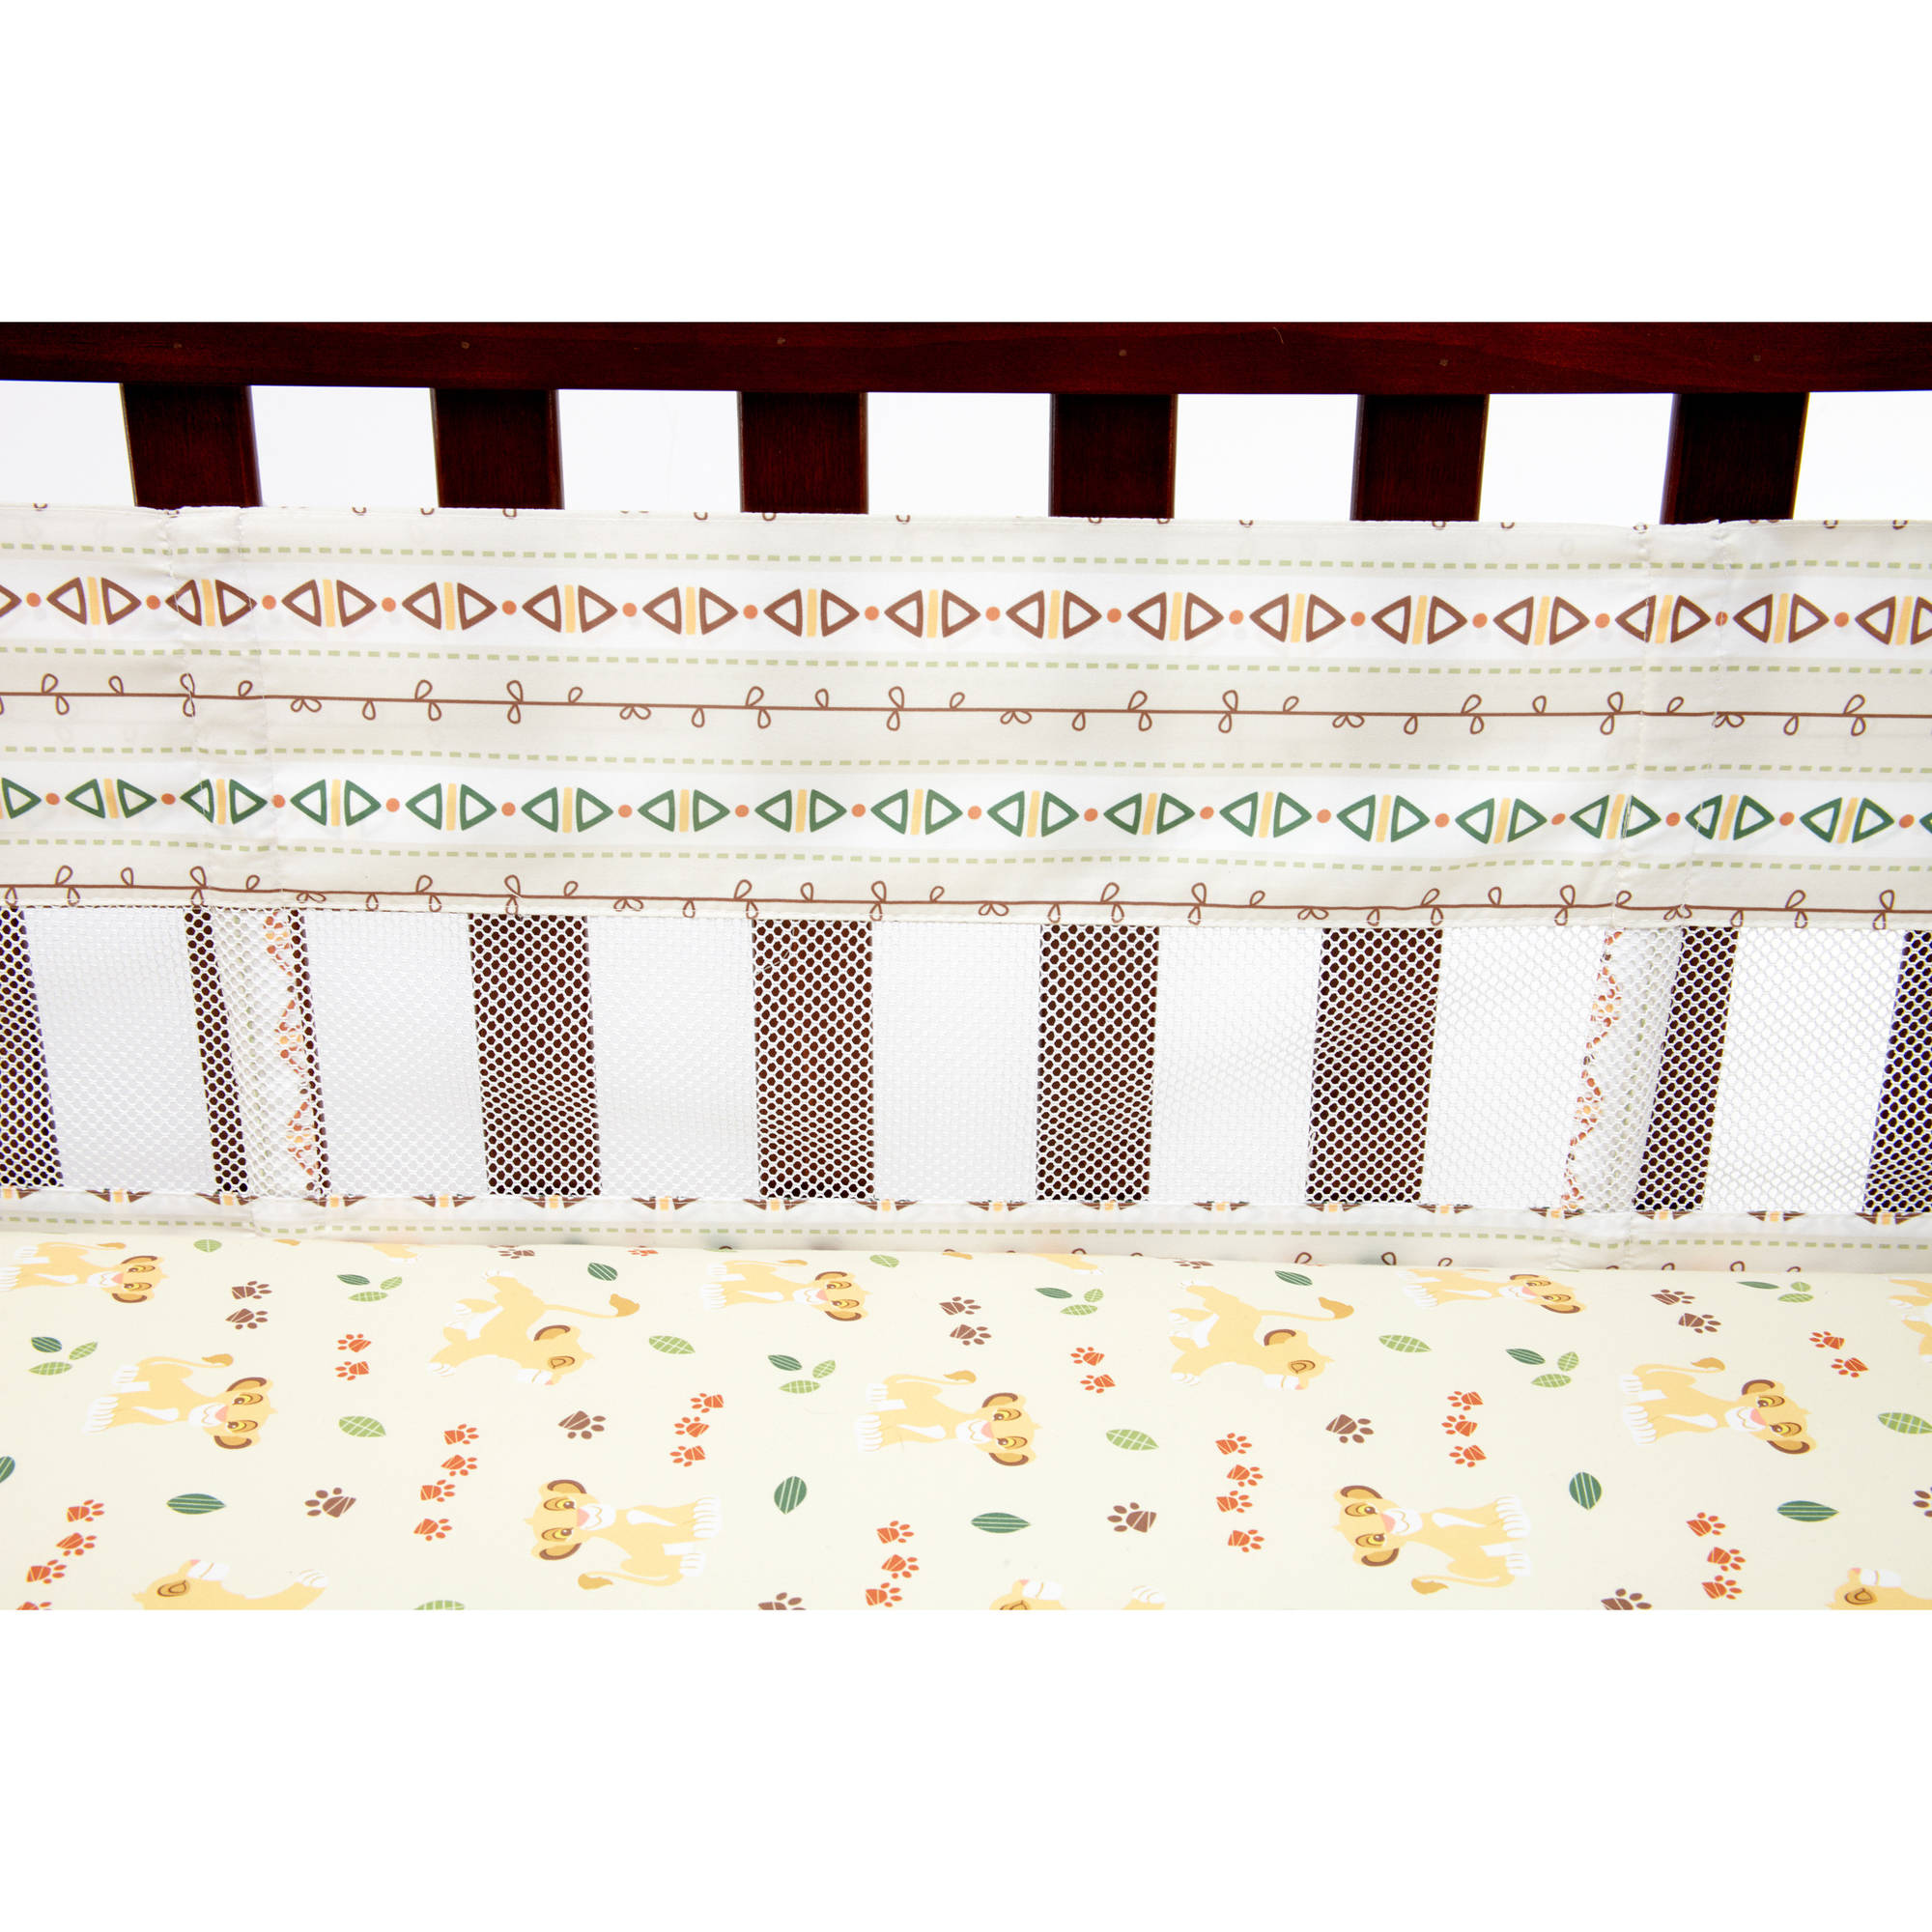 The Disney Lion King Under the Sun Secure-Me Crib Liner